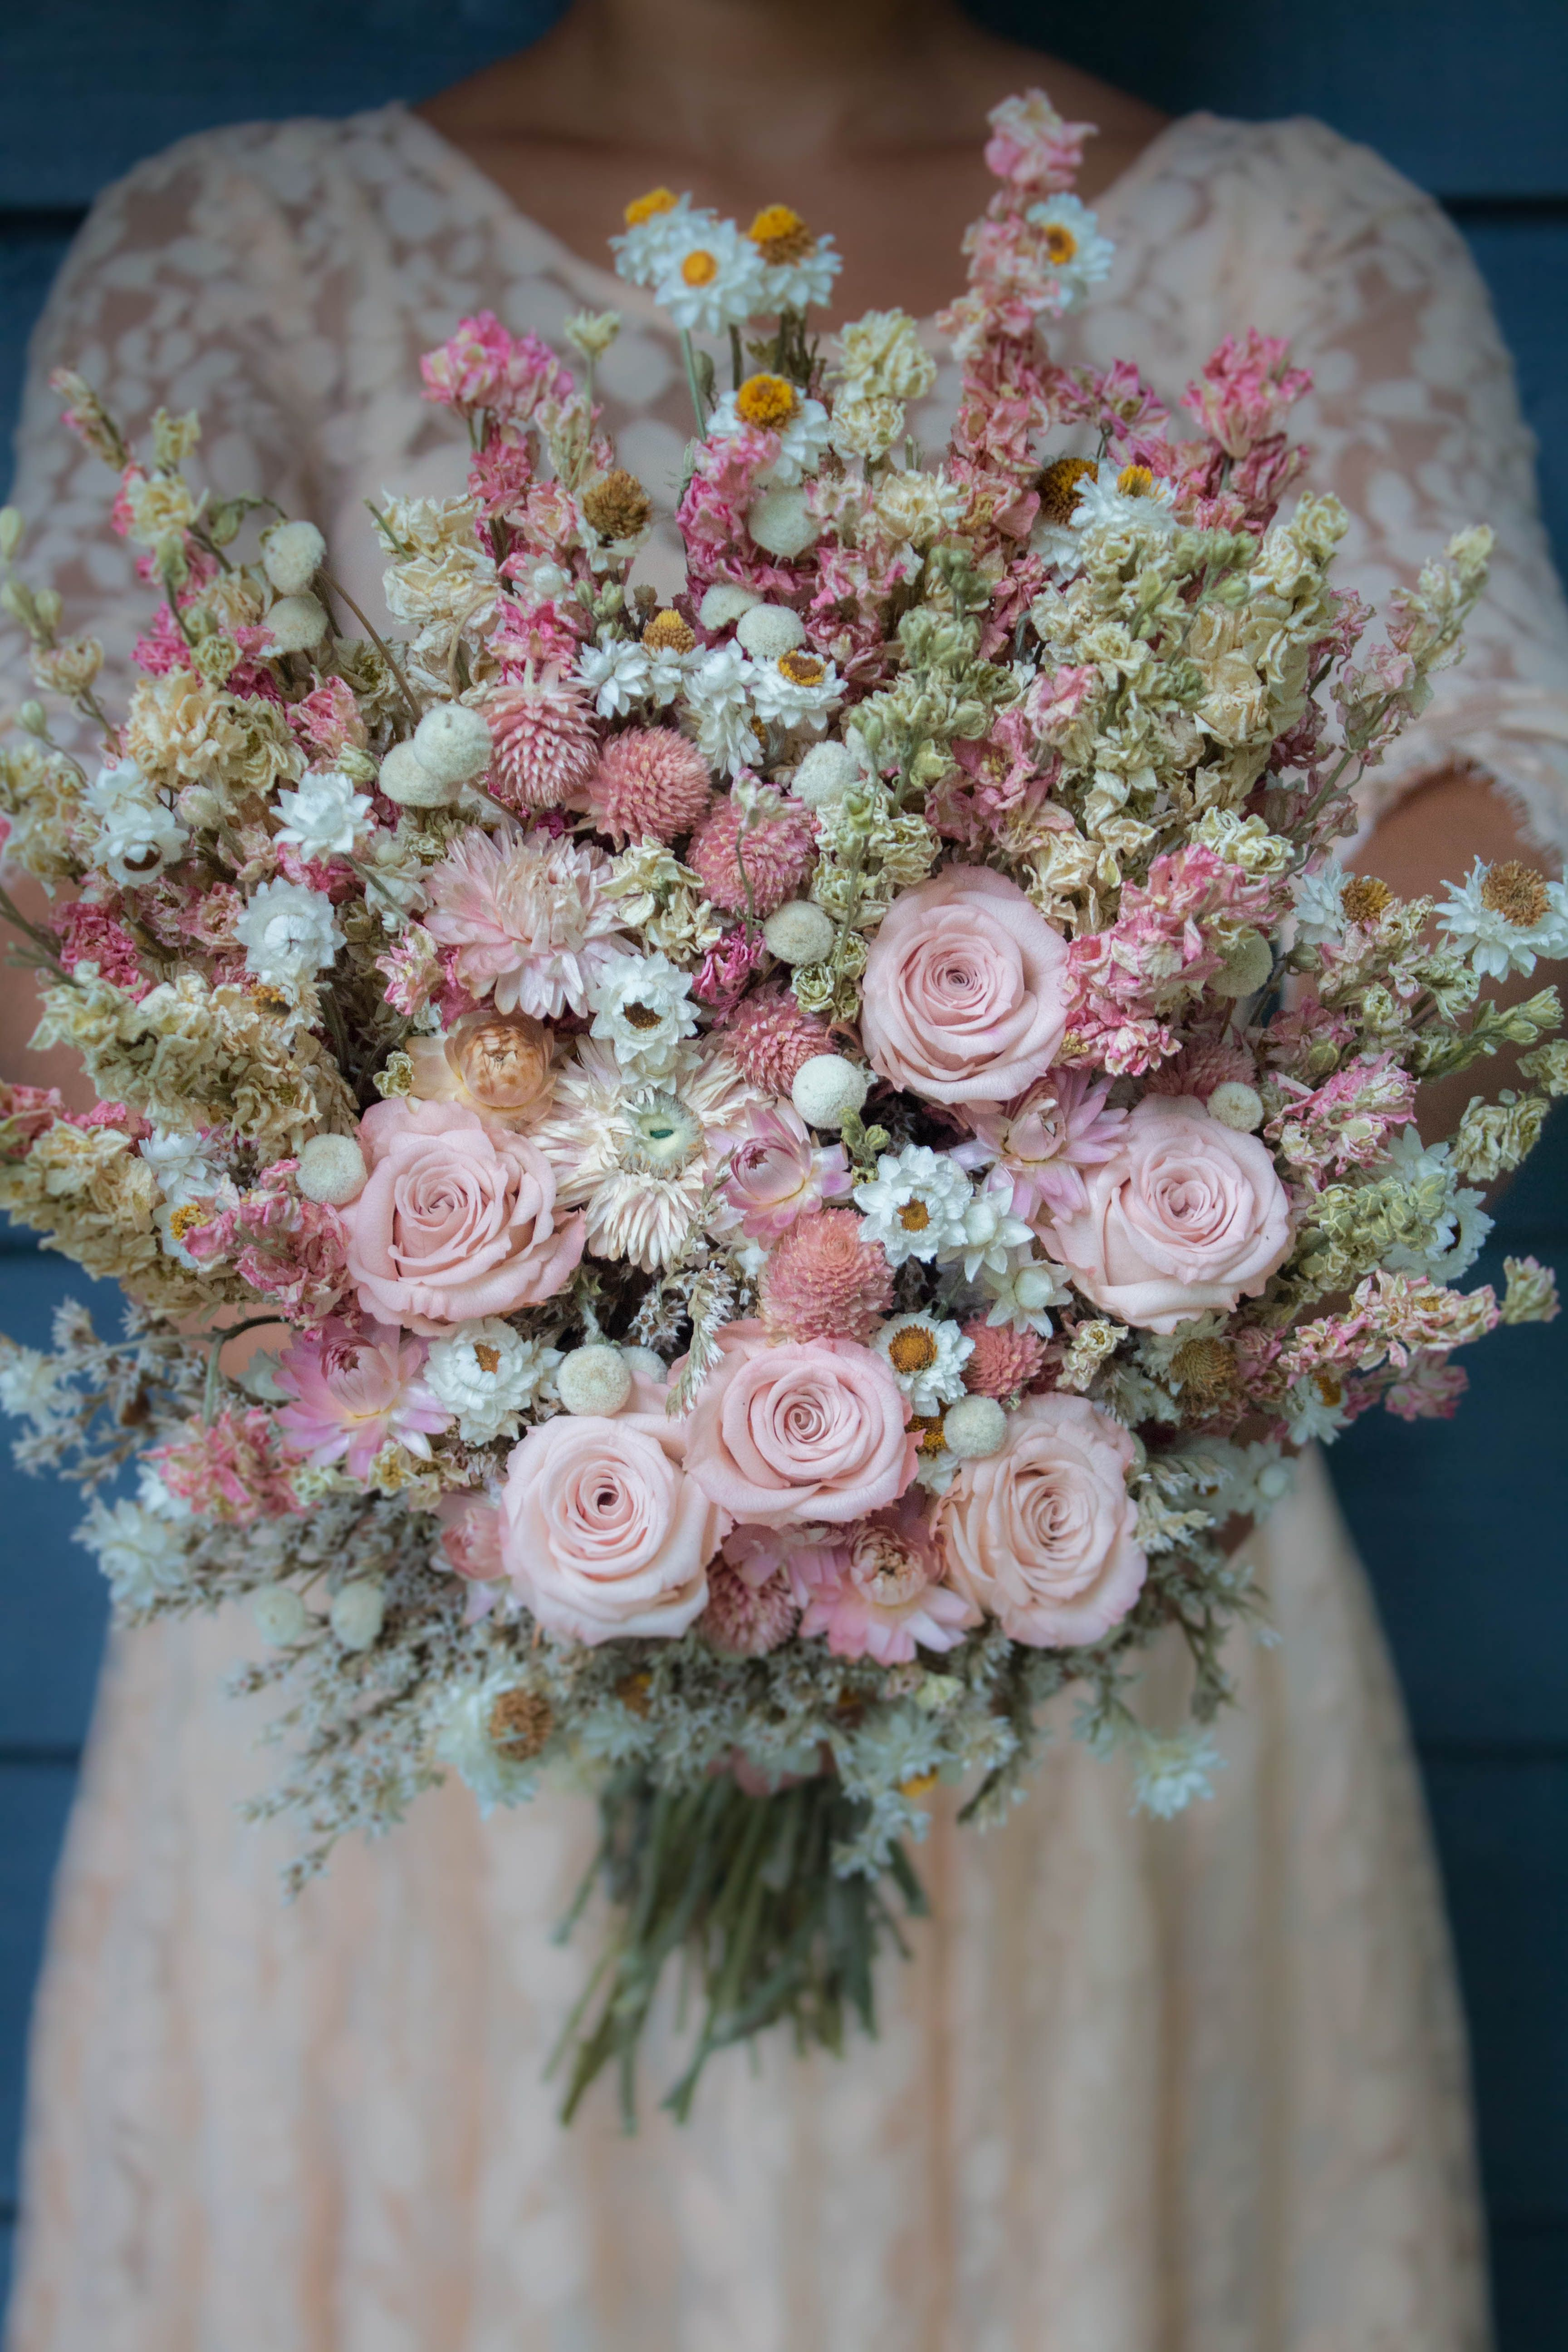 Lovely dried wedding flower bouquet just perfect for any spring lovely dried wedding flower bouquet just perfect for any spring wedding this bridal bouquet made of beautiful dried flowers can be shipped right to your izmirmasajfo